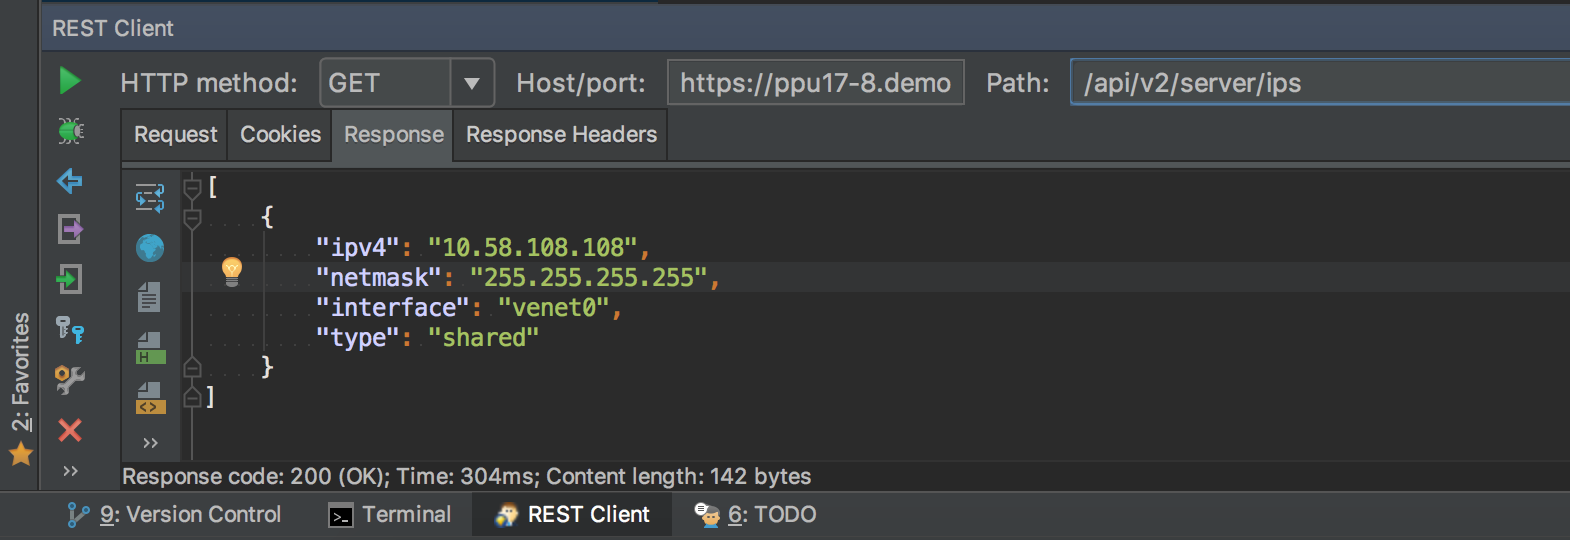 new remote REST API on Plesk - REST Client